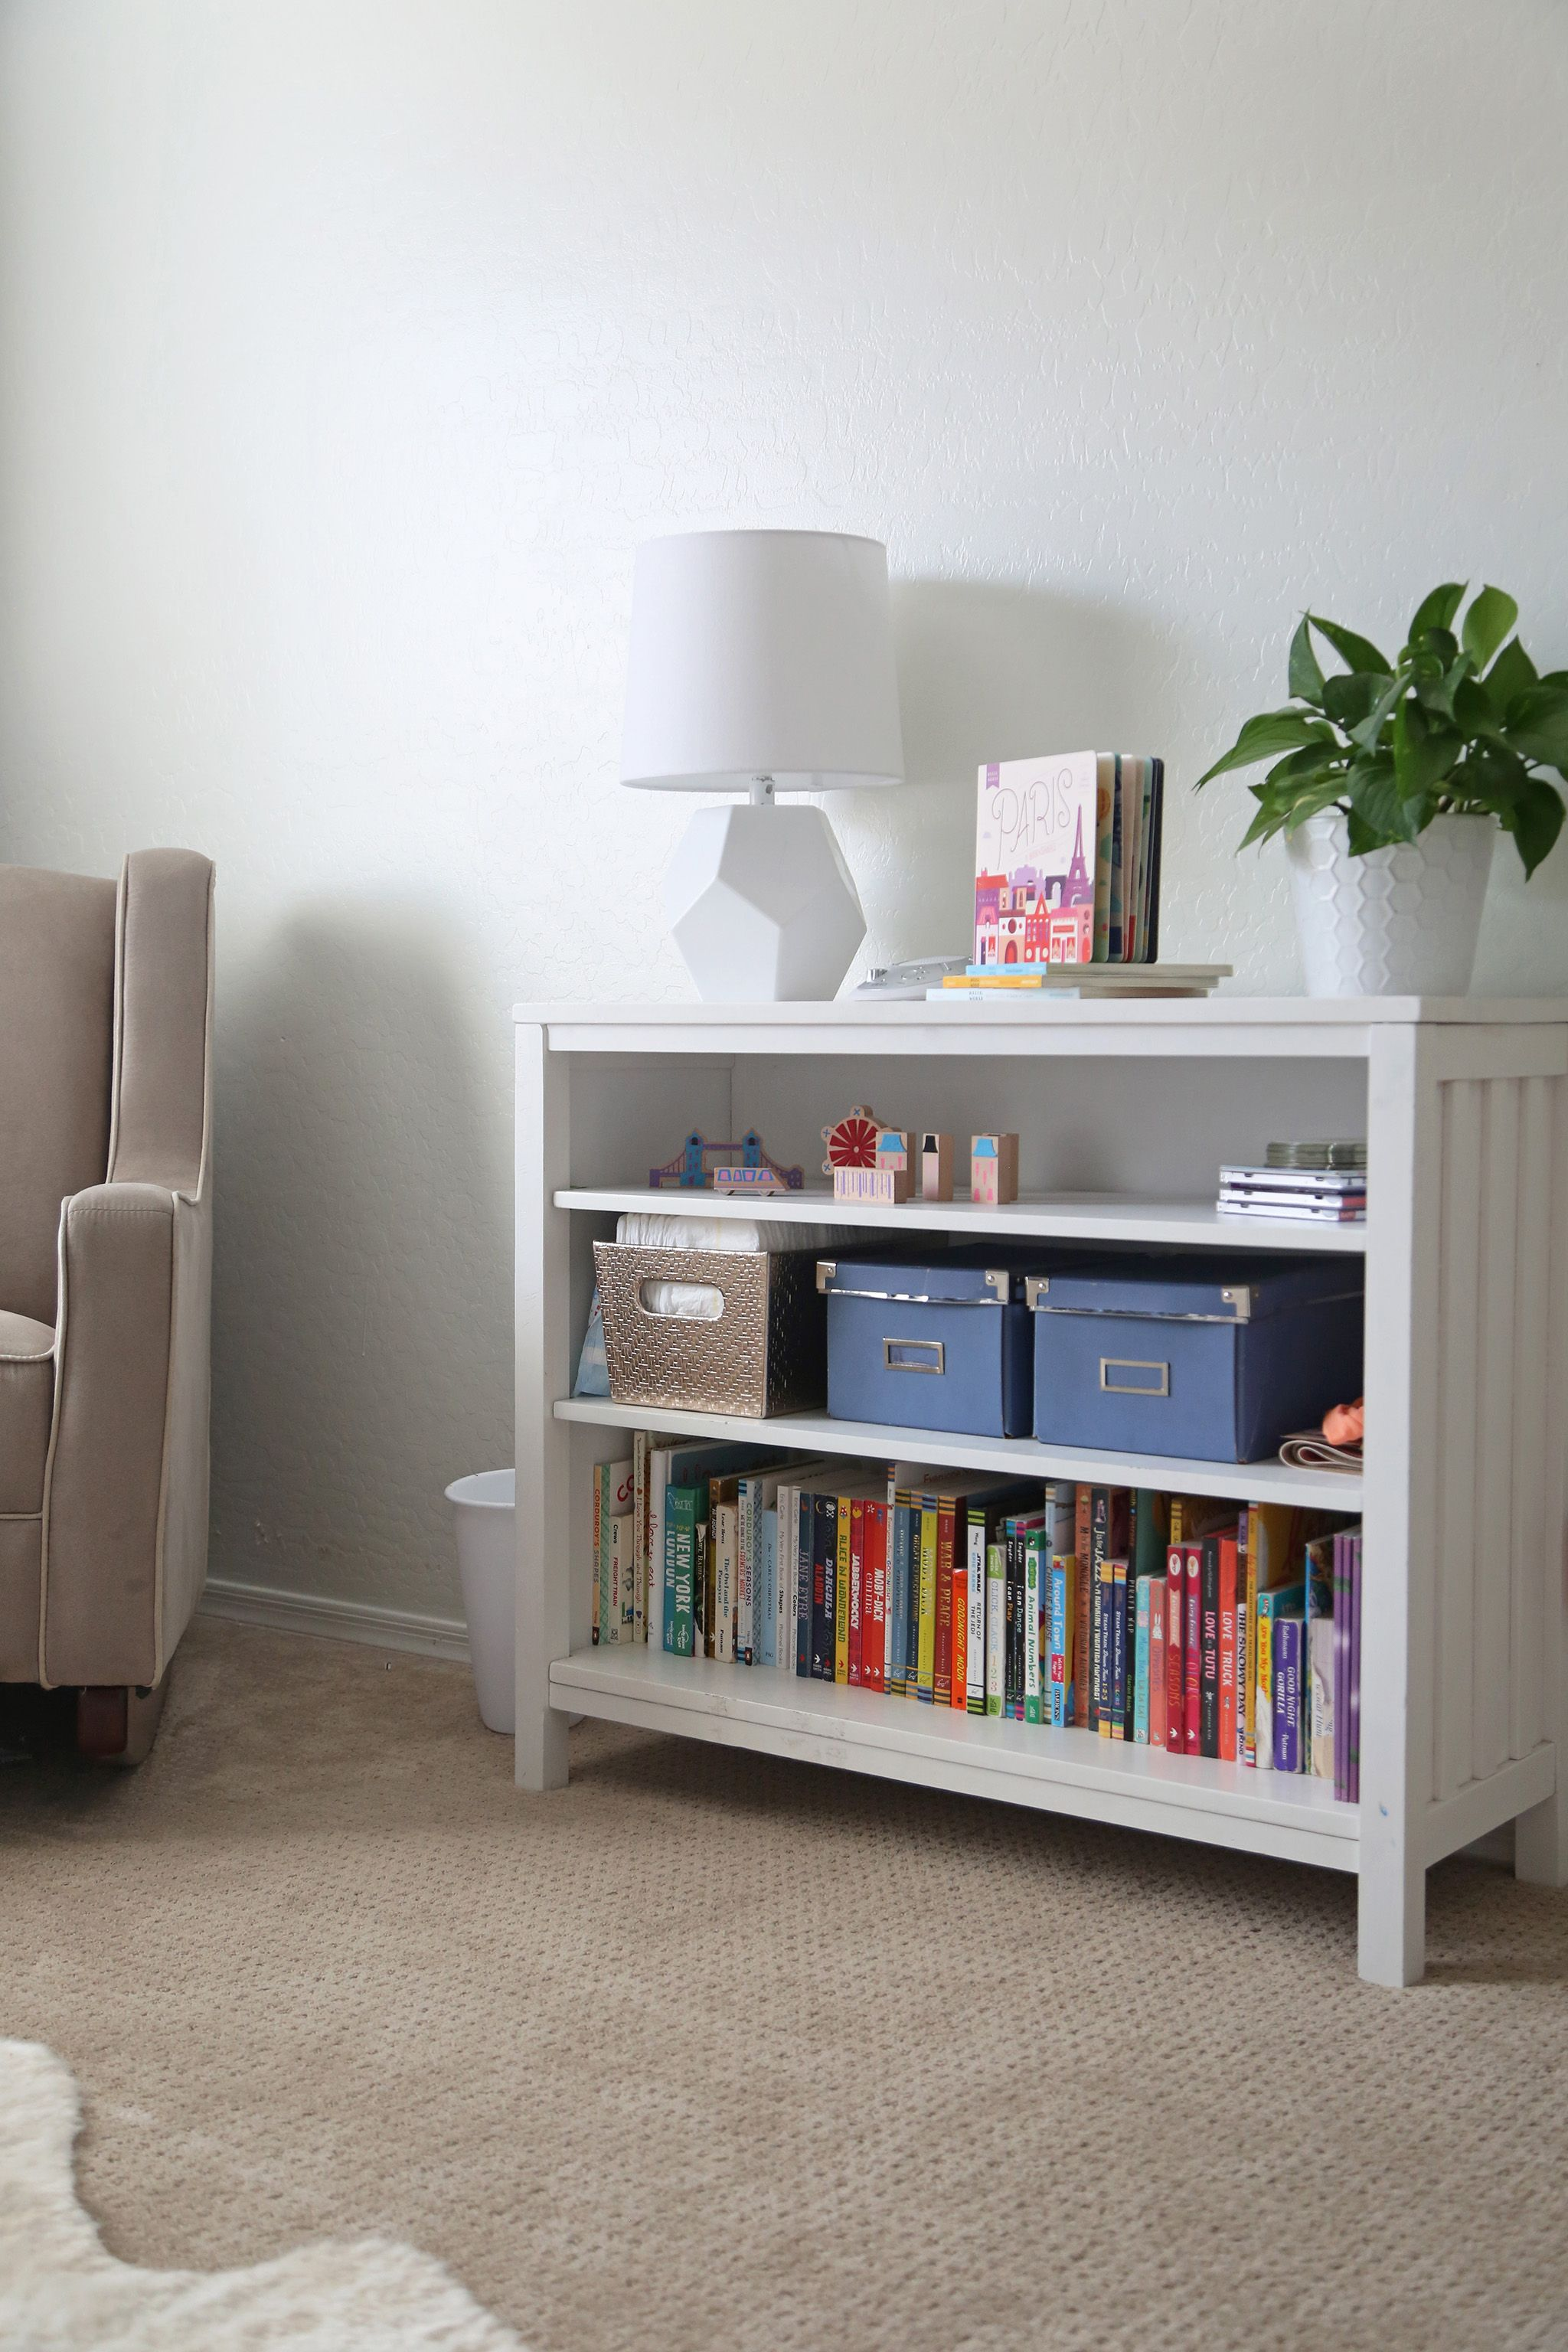 We Love Seeing Nursery Shelving Ideas This One Is Sweet And Simple With Tons Of Room For Books